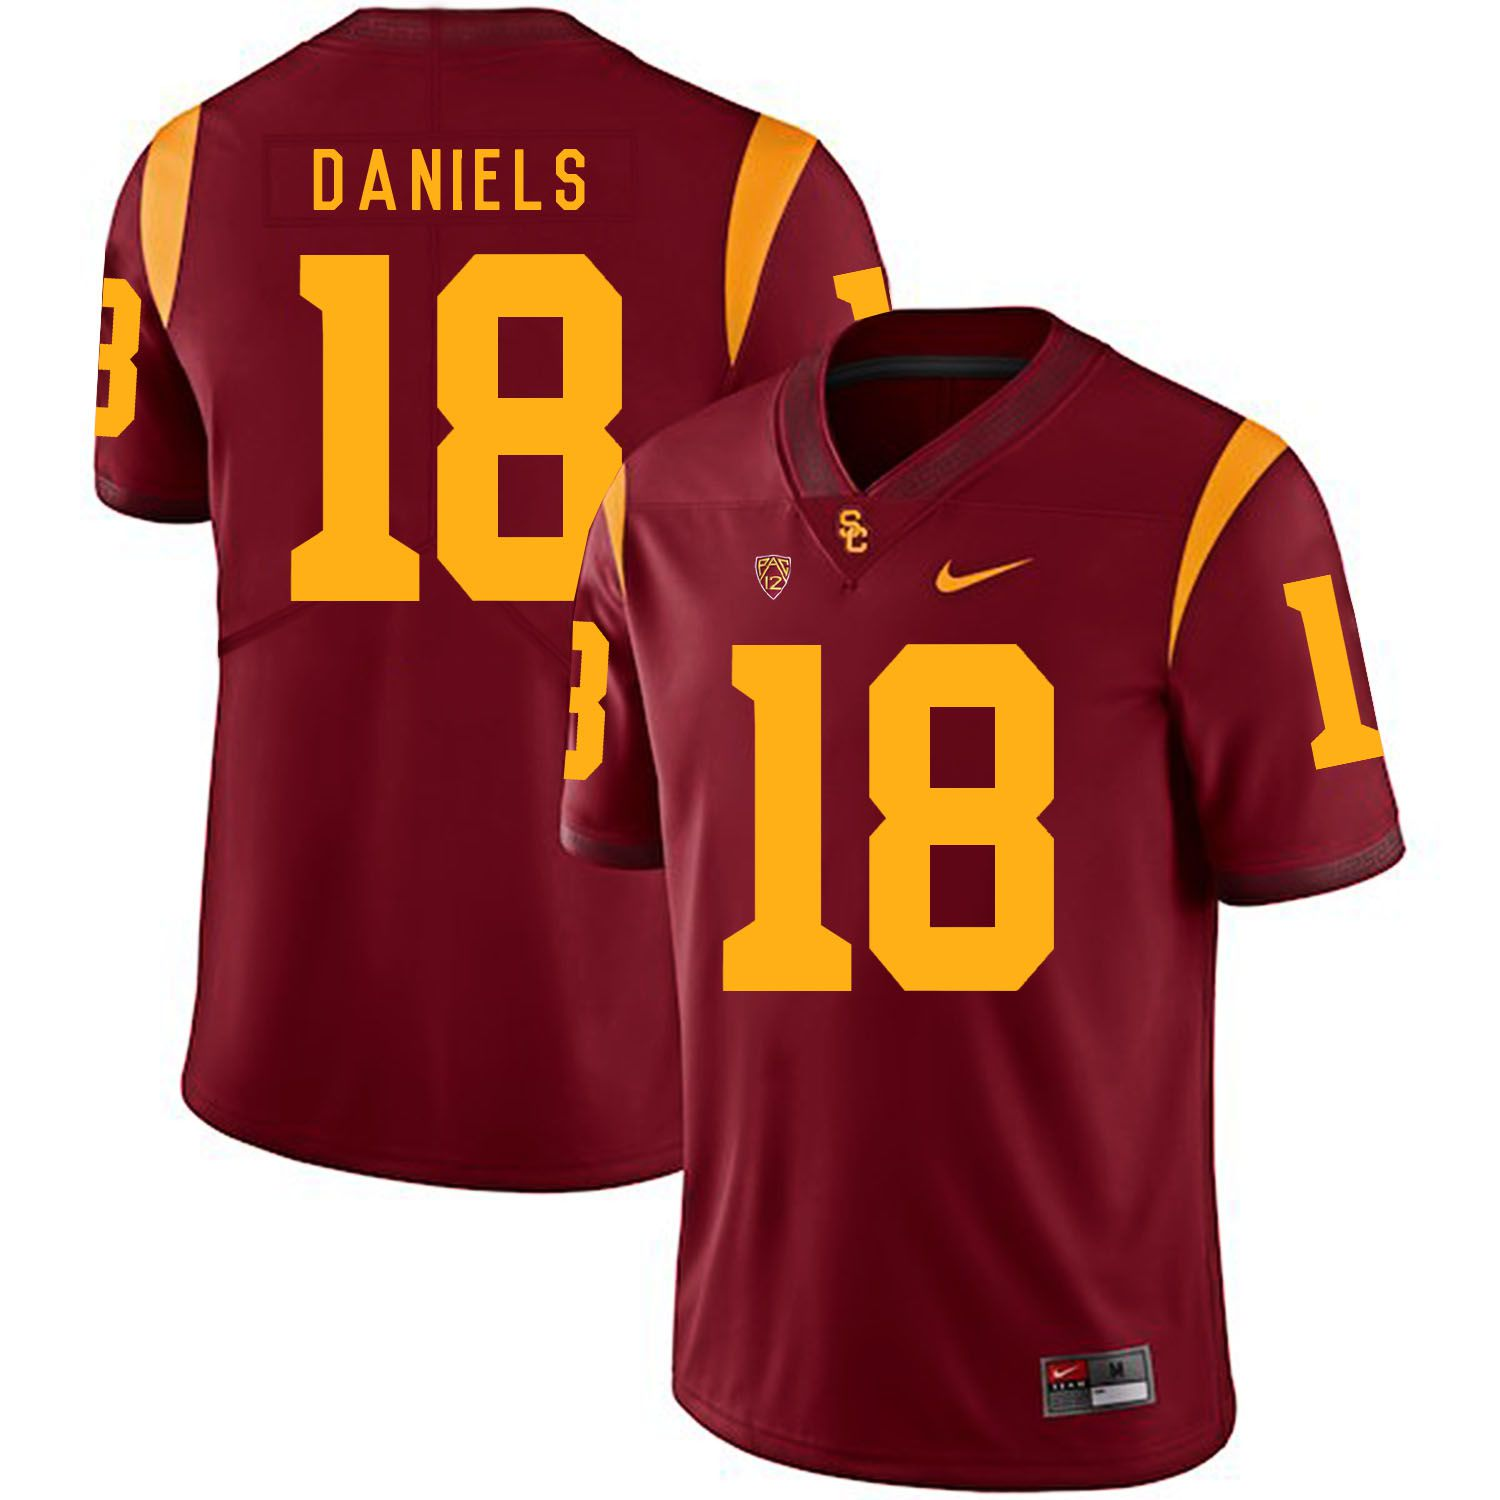 Men USC Trojans 18 Daniels Red Customized NCAA Jerseys